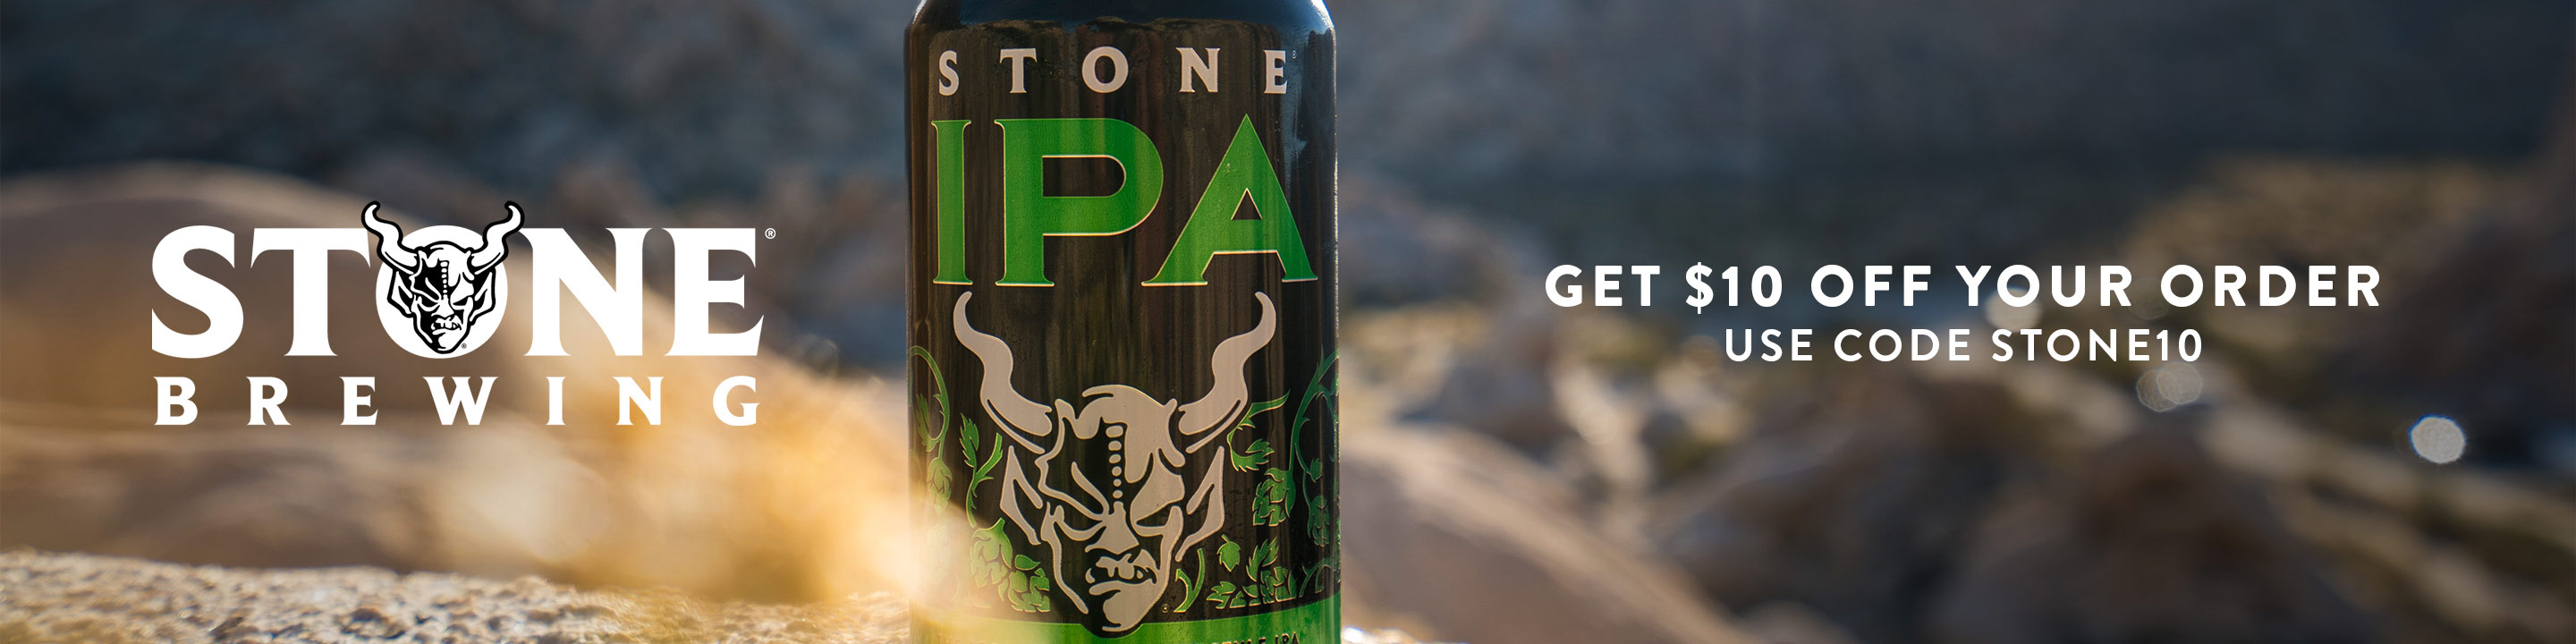 Founded by Greg Koch and Steve Wagner, Stone Brewing has come a long way since opening in San Diego County in 1996. Now the ninth-largest craft brewer in the U.S., we operate brewing facilities on both coasts – Escondido, California and Richmond, Virginia. It's no secret that our IPAs are second to none. We pioneered the West Coast IPA, released the first year-round bottled double IPA on the planet, and continue to innovate our lineup with creative ingredients.